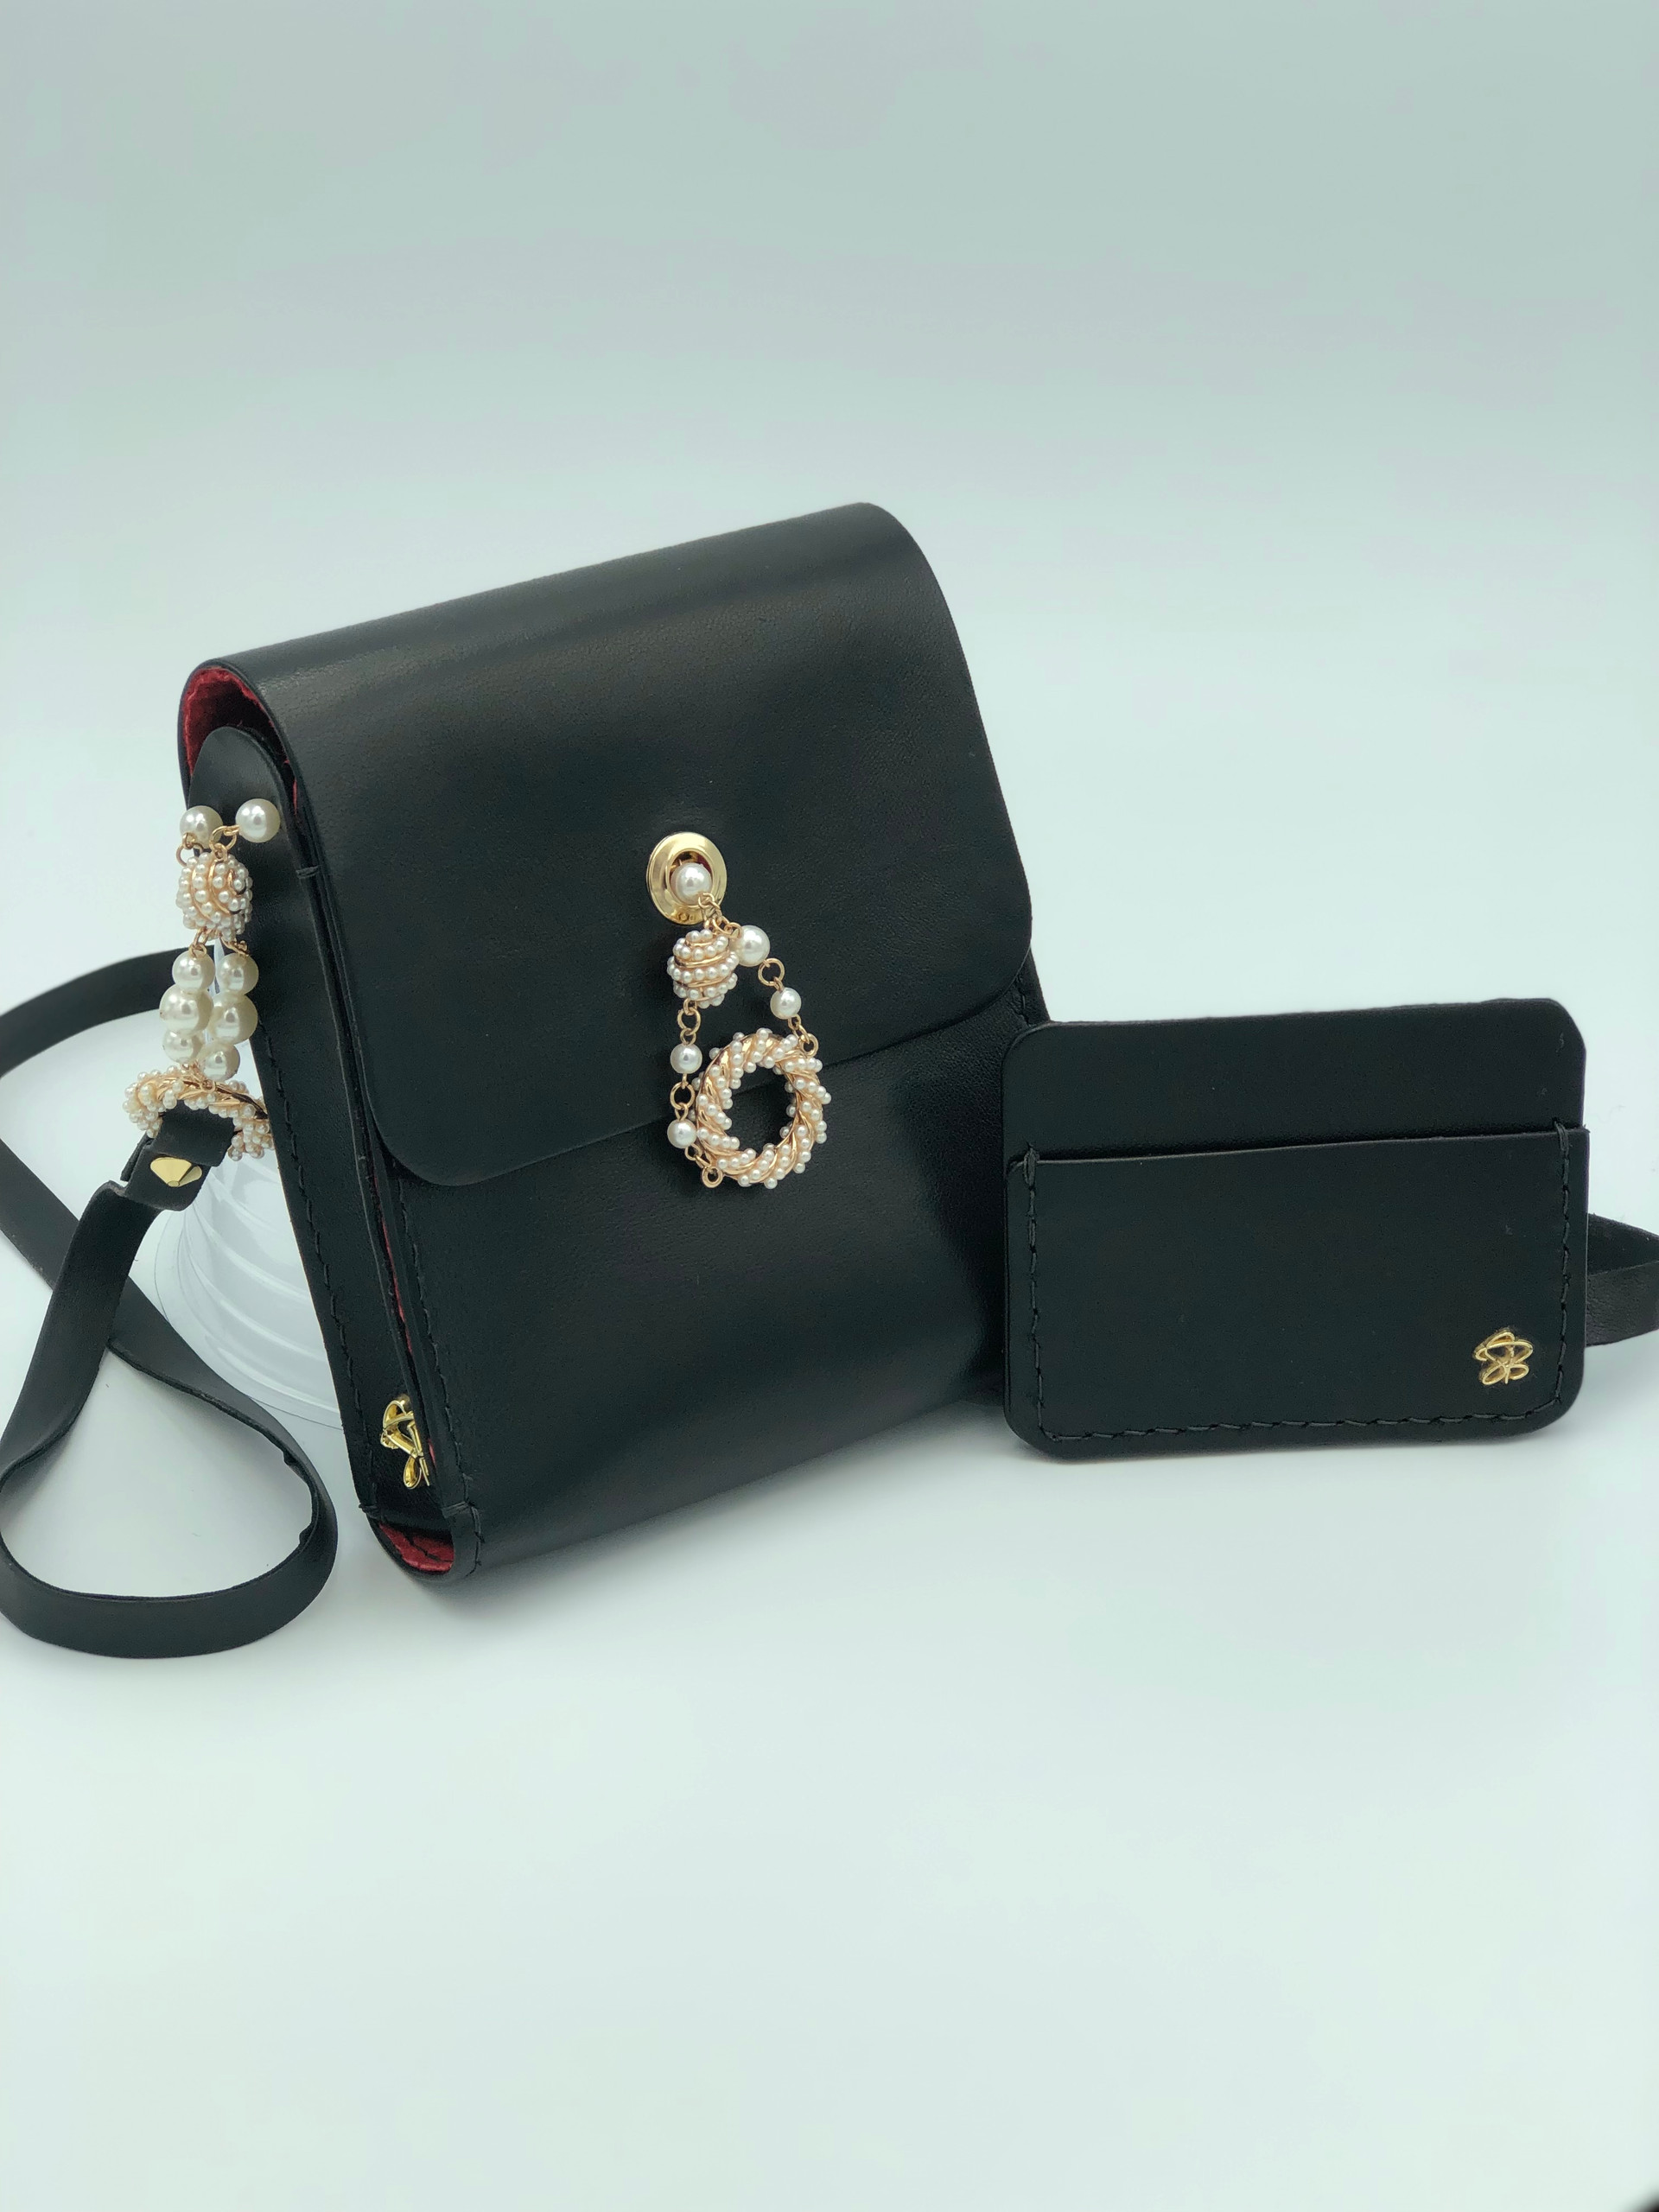 SuziBag - Black, Pearls